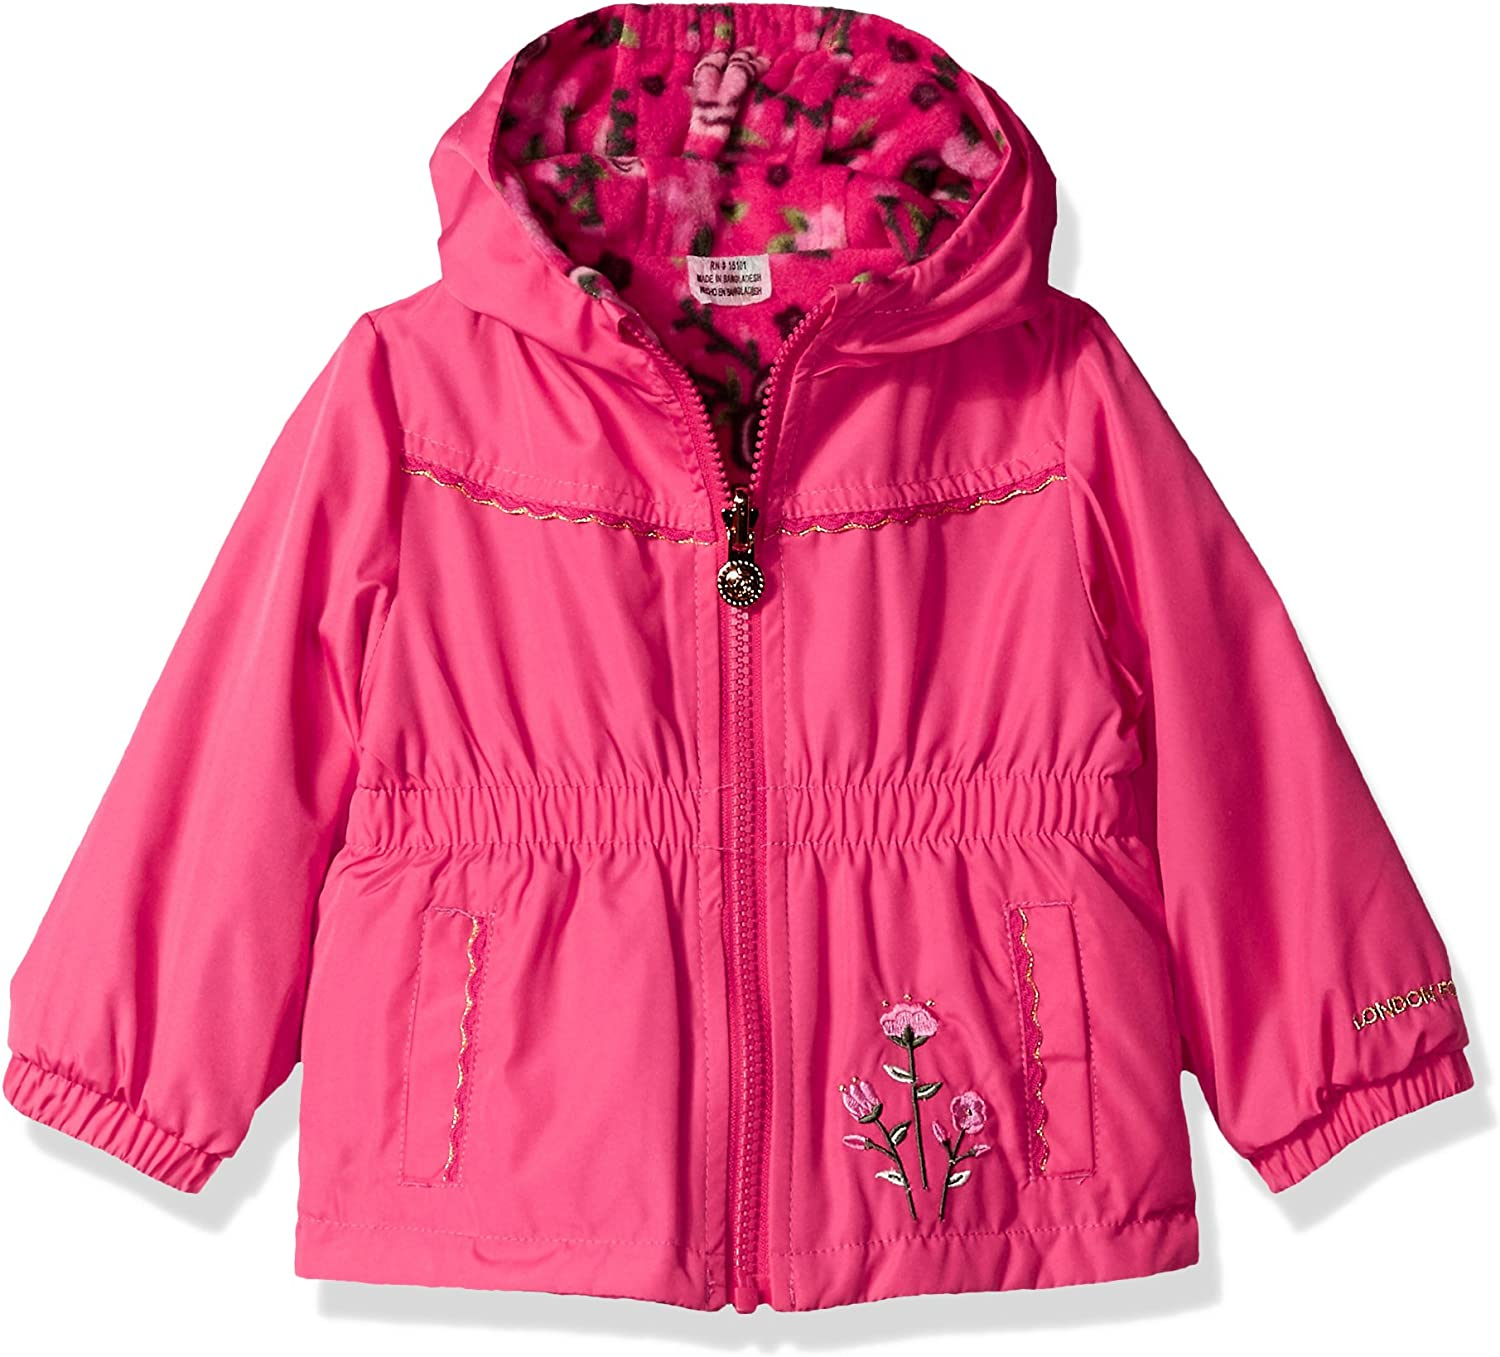 LONDON FOG Baby Girls Reversible Soft /& Sensible Jacket Coat